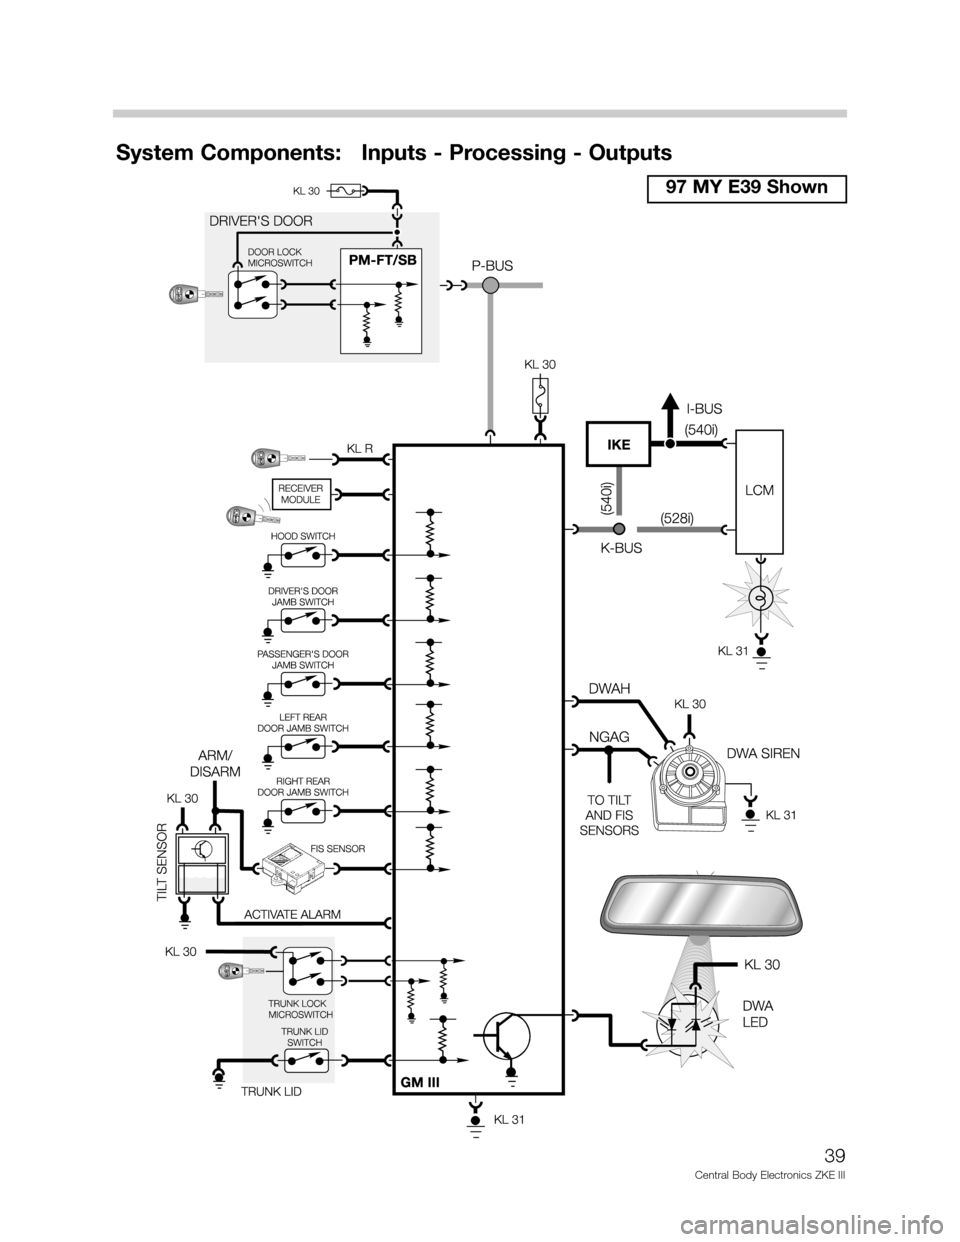 coil pack diagram additionally ignition coil wiring harness diagram